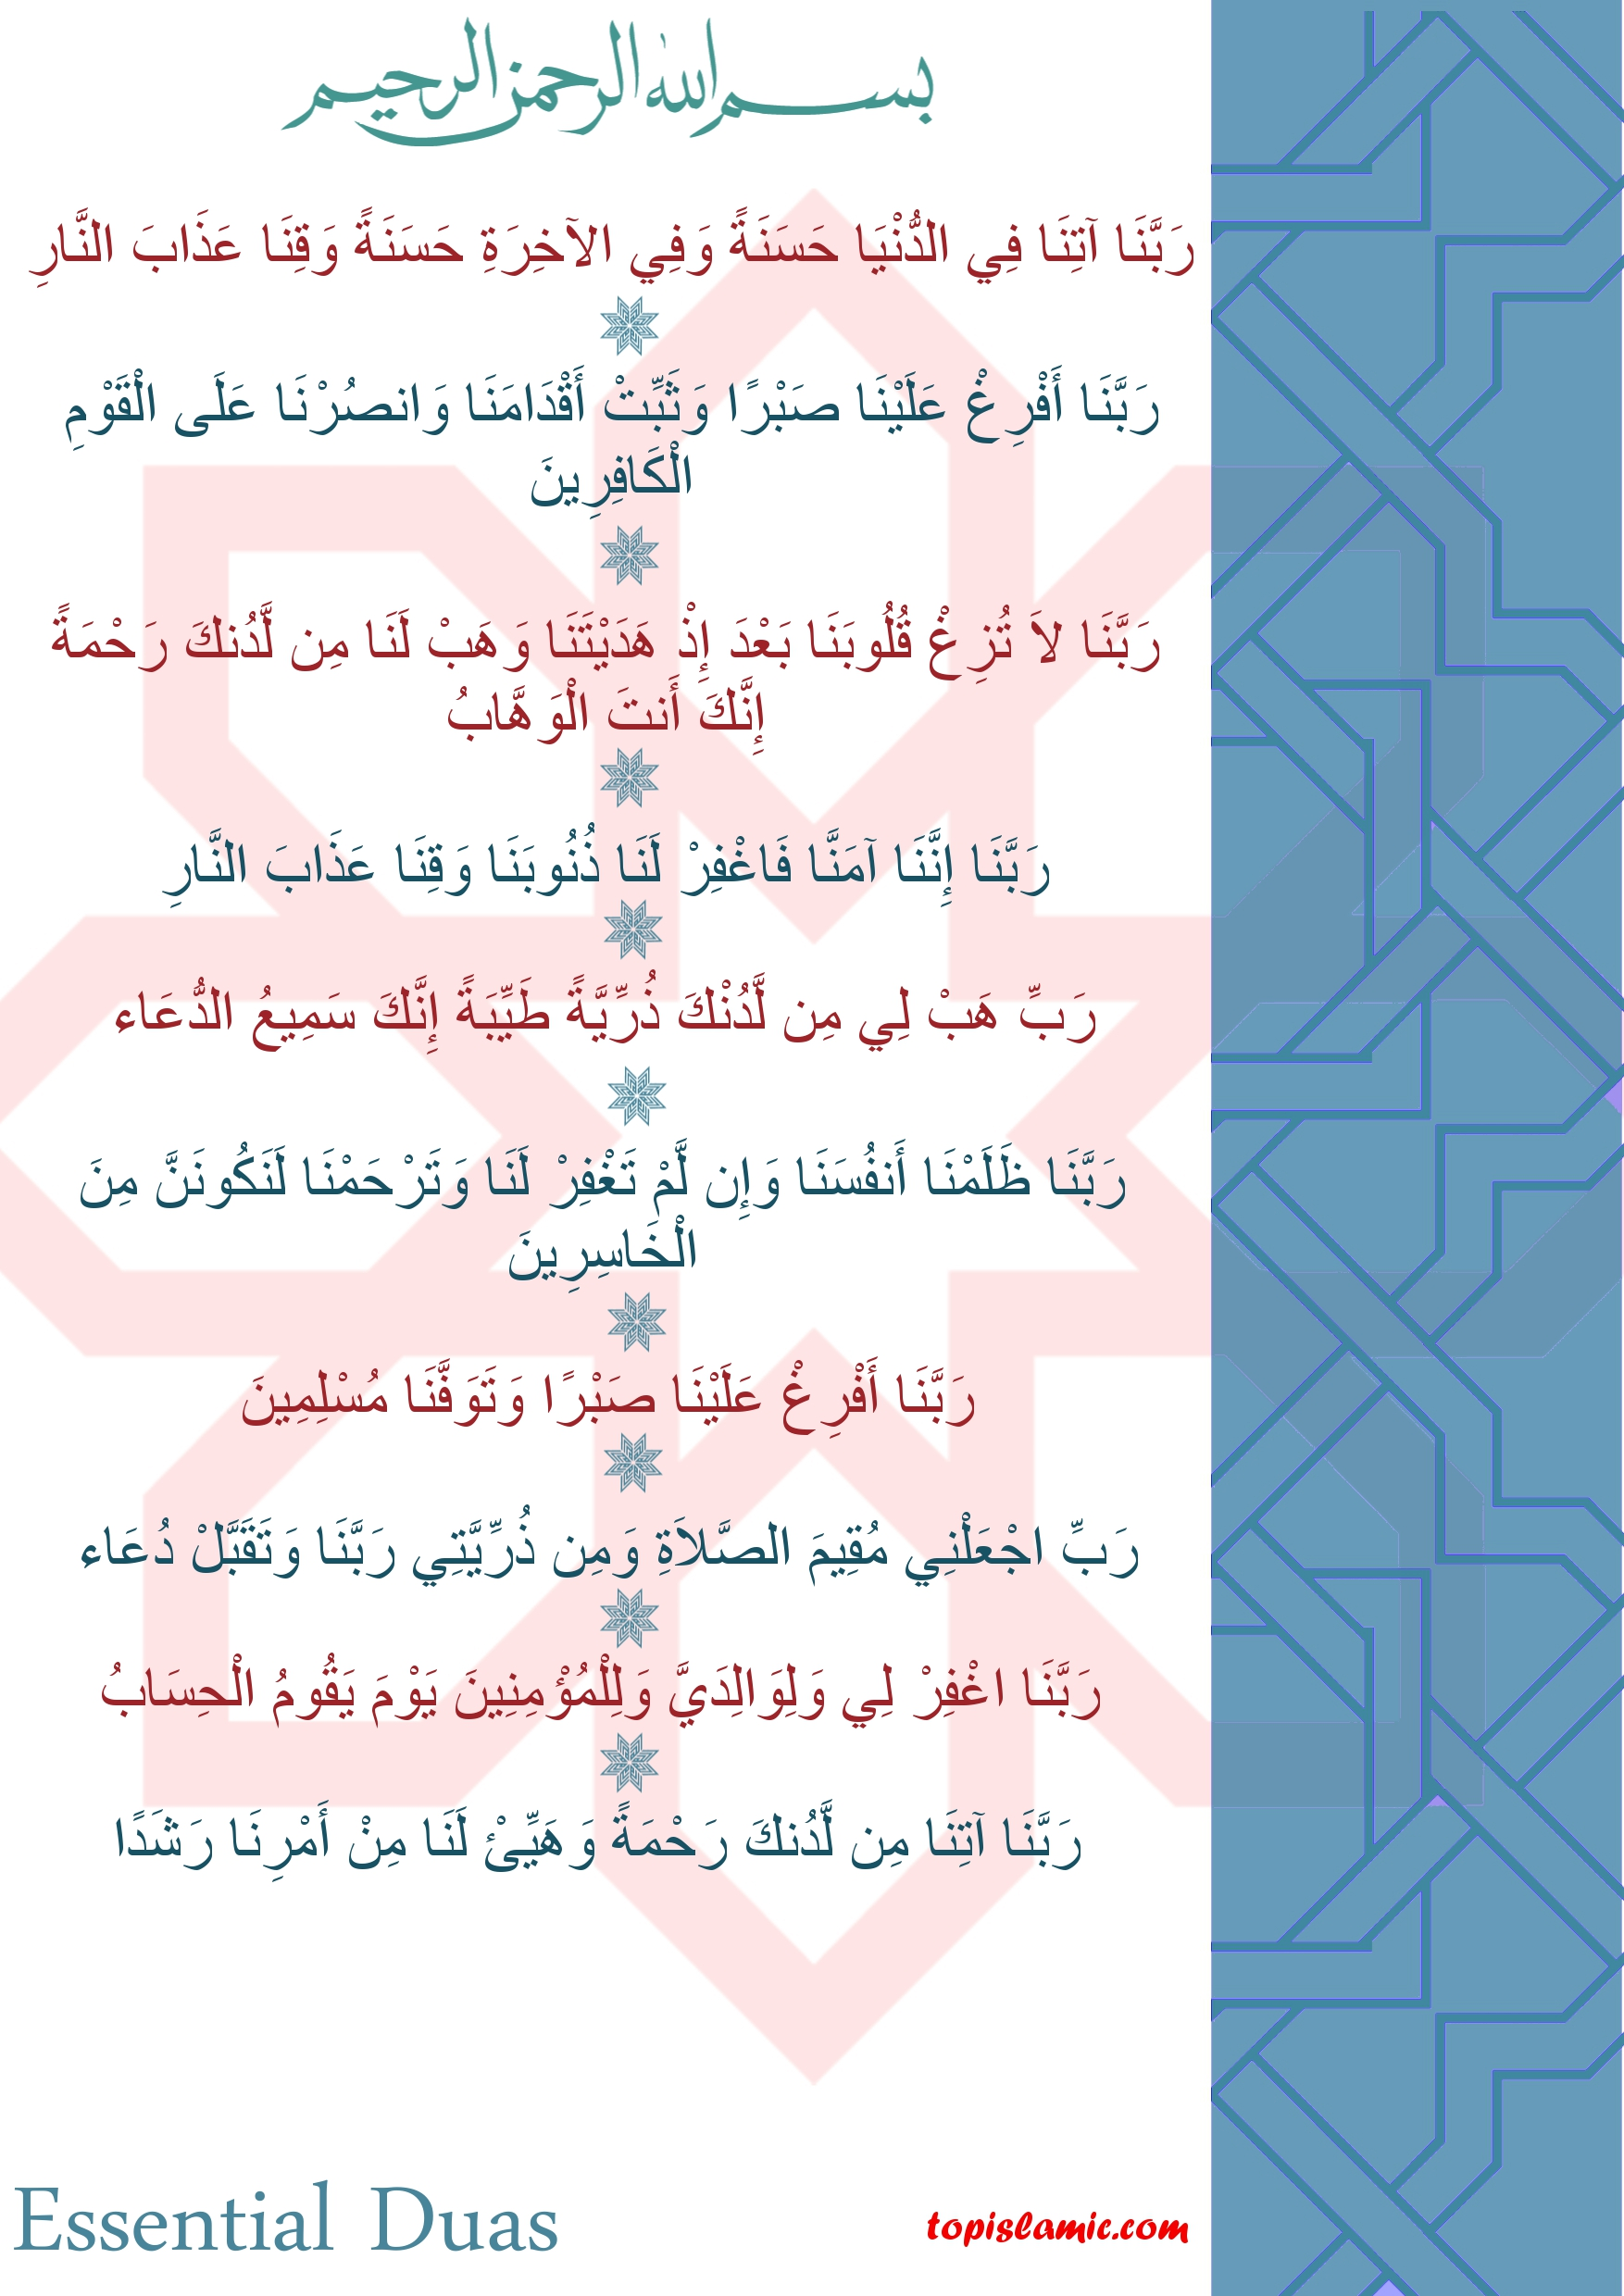 Islamic Duas Download